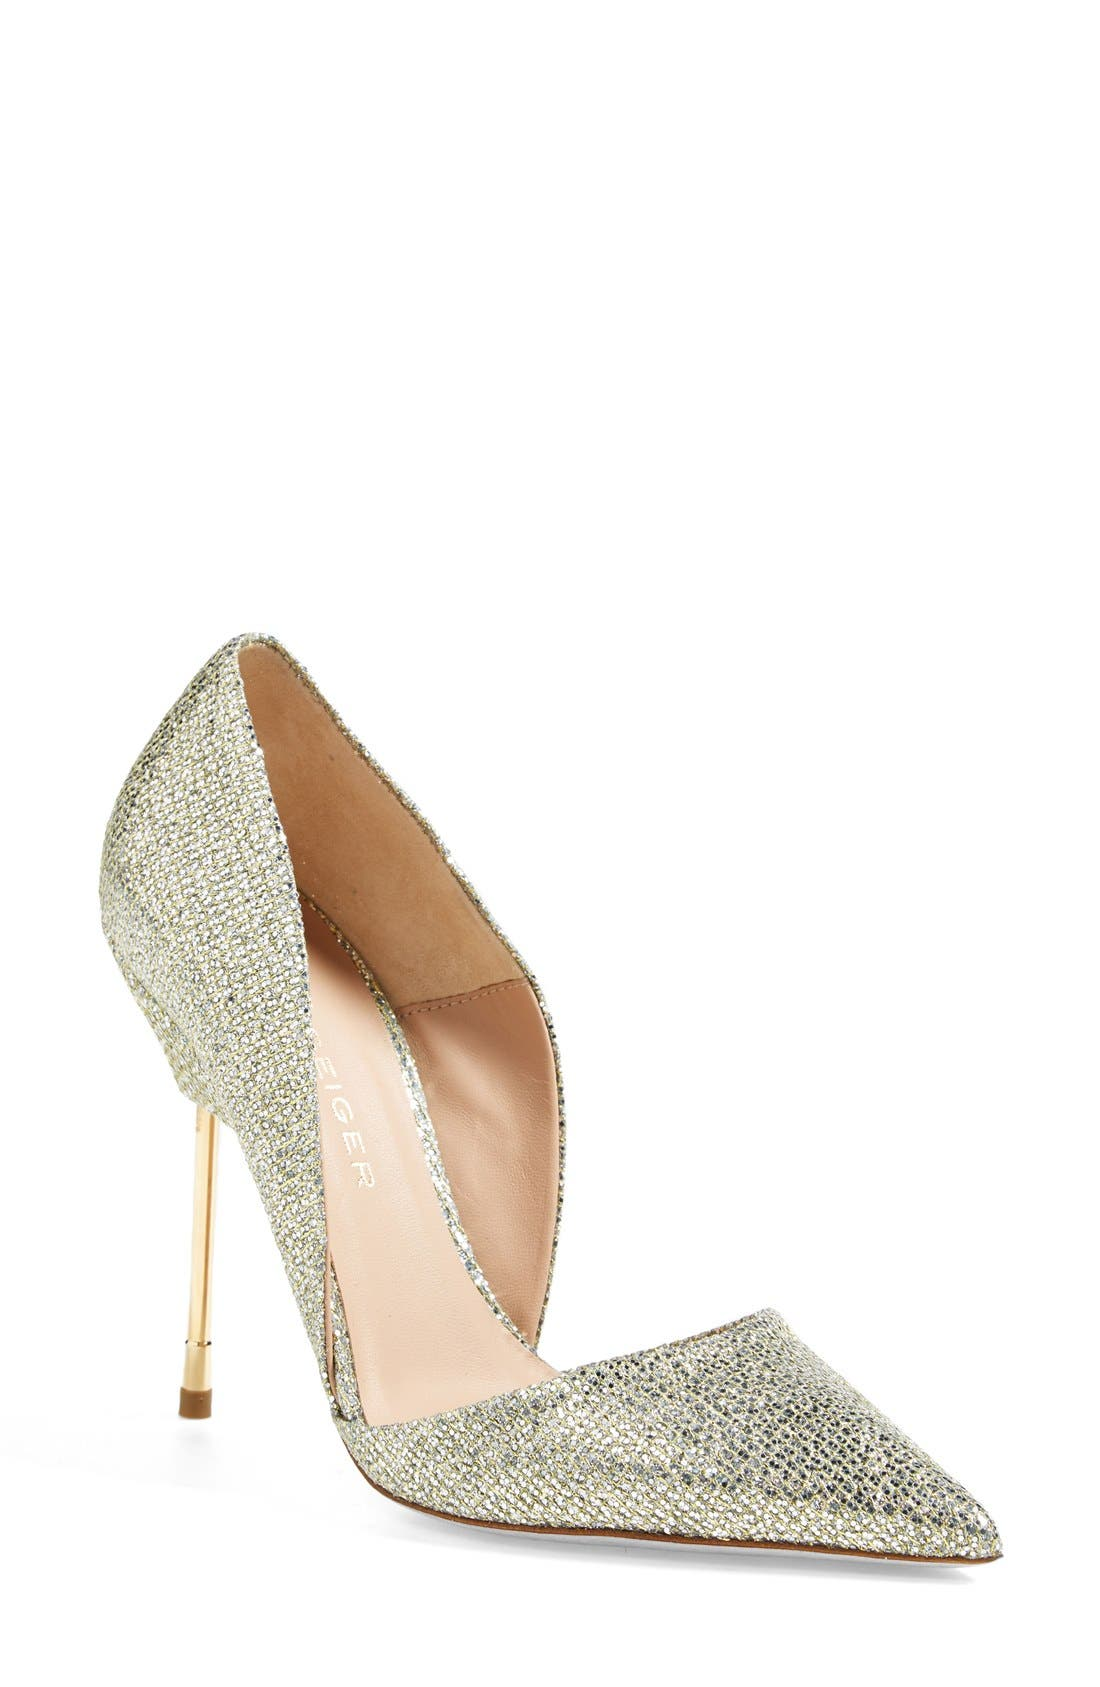 Alternate Image 1 Selected - Kurt Geiger London 'Bond 2' d'Orsay Pump (Women)